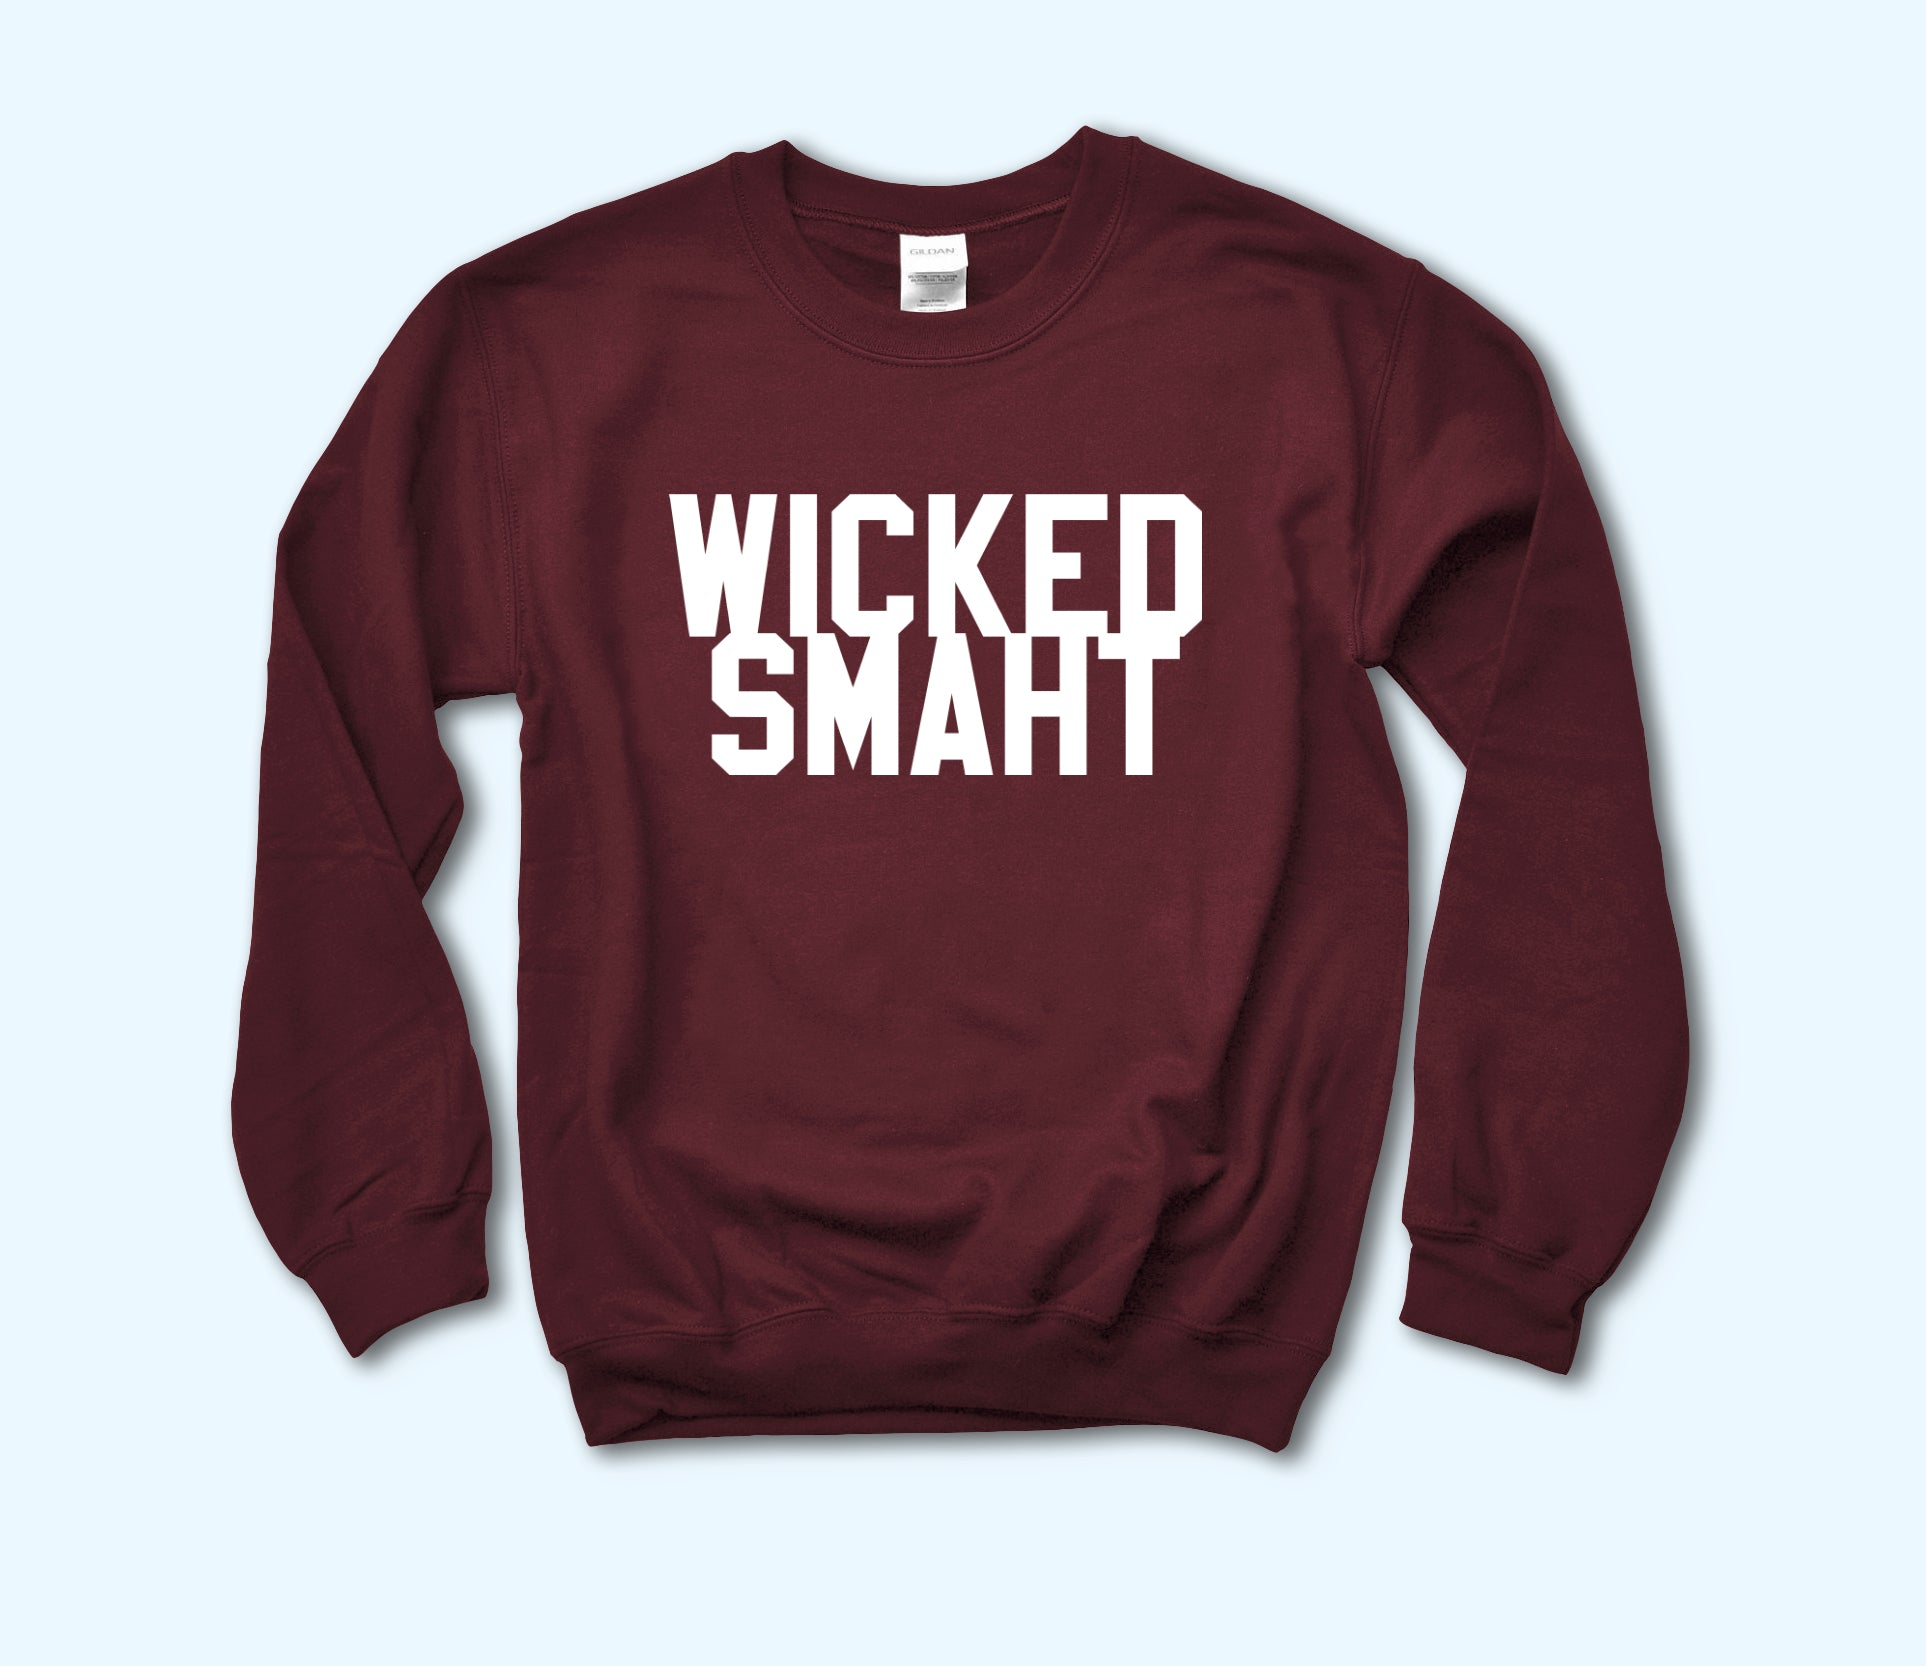 Wicked Smaht Sweatshirt